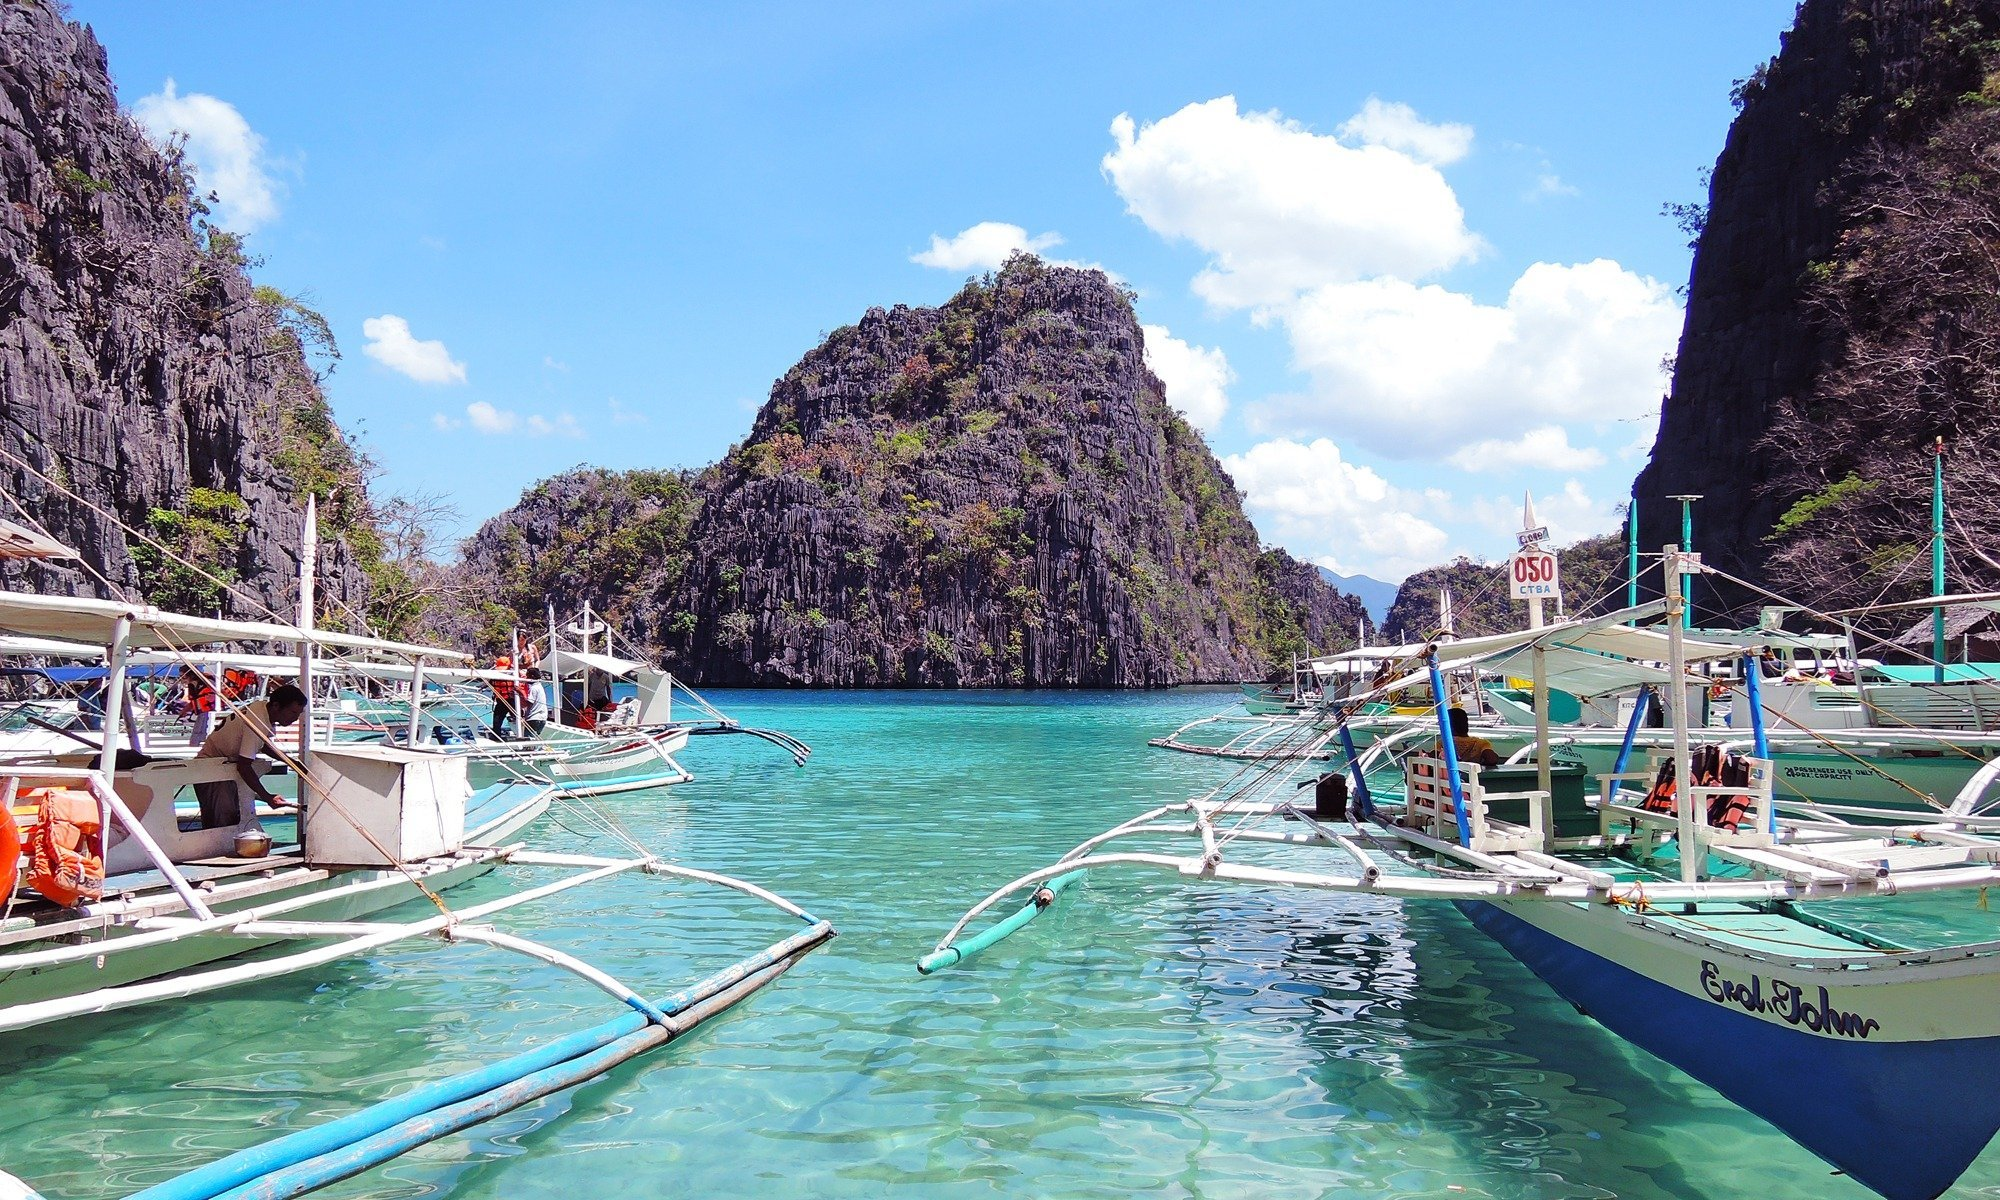 When in Coron, you don't have to choose between dingy backpacker hotels and ultra-expensive exclusive island resorts. There's a pretty nice middle ground where you'll find artsy, chic hotels and resorts at reasonable prices. Here where to stay in Coron.